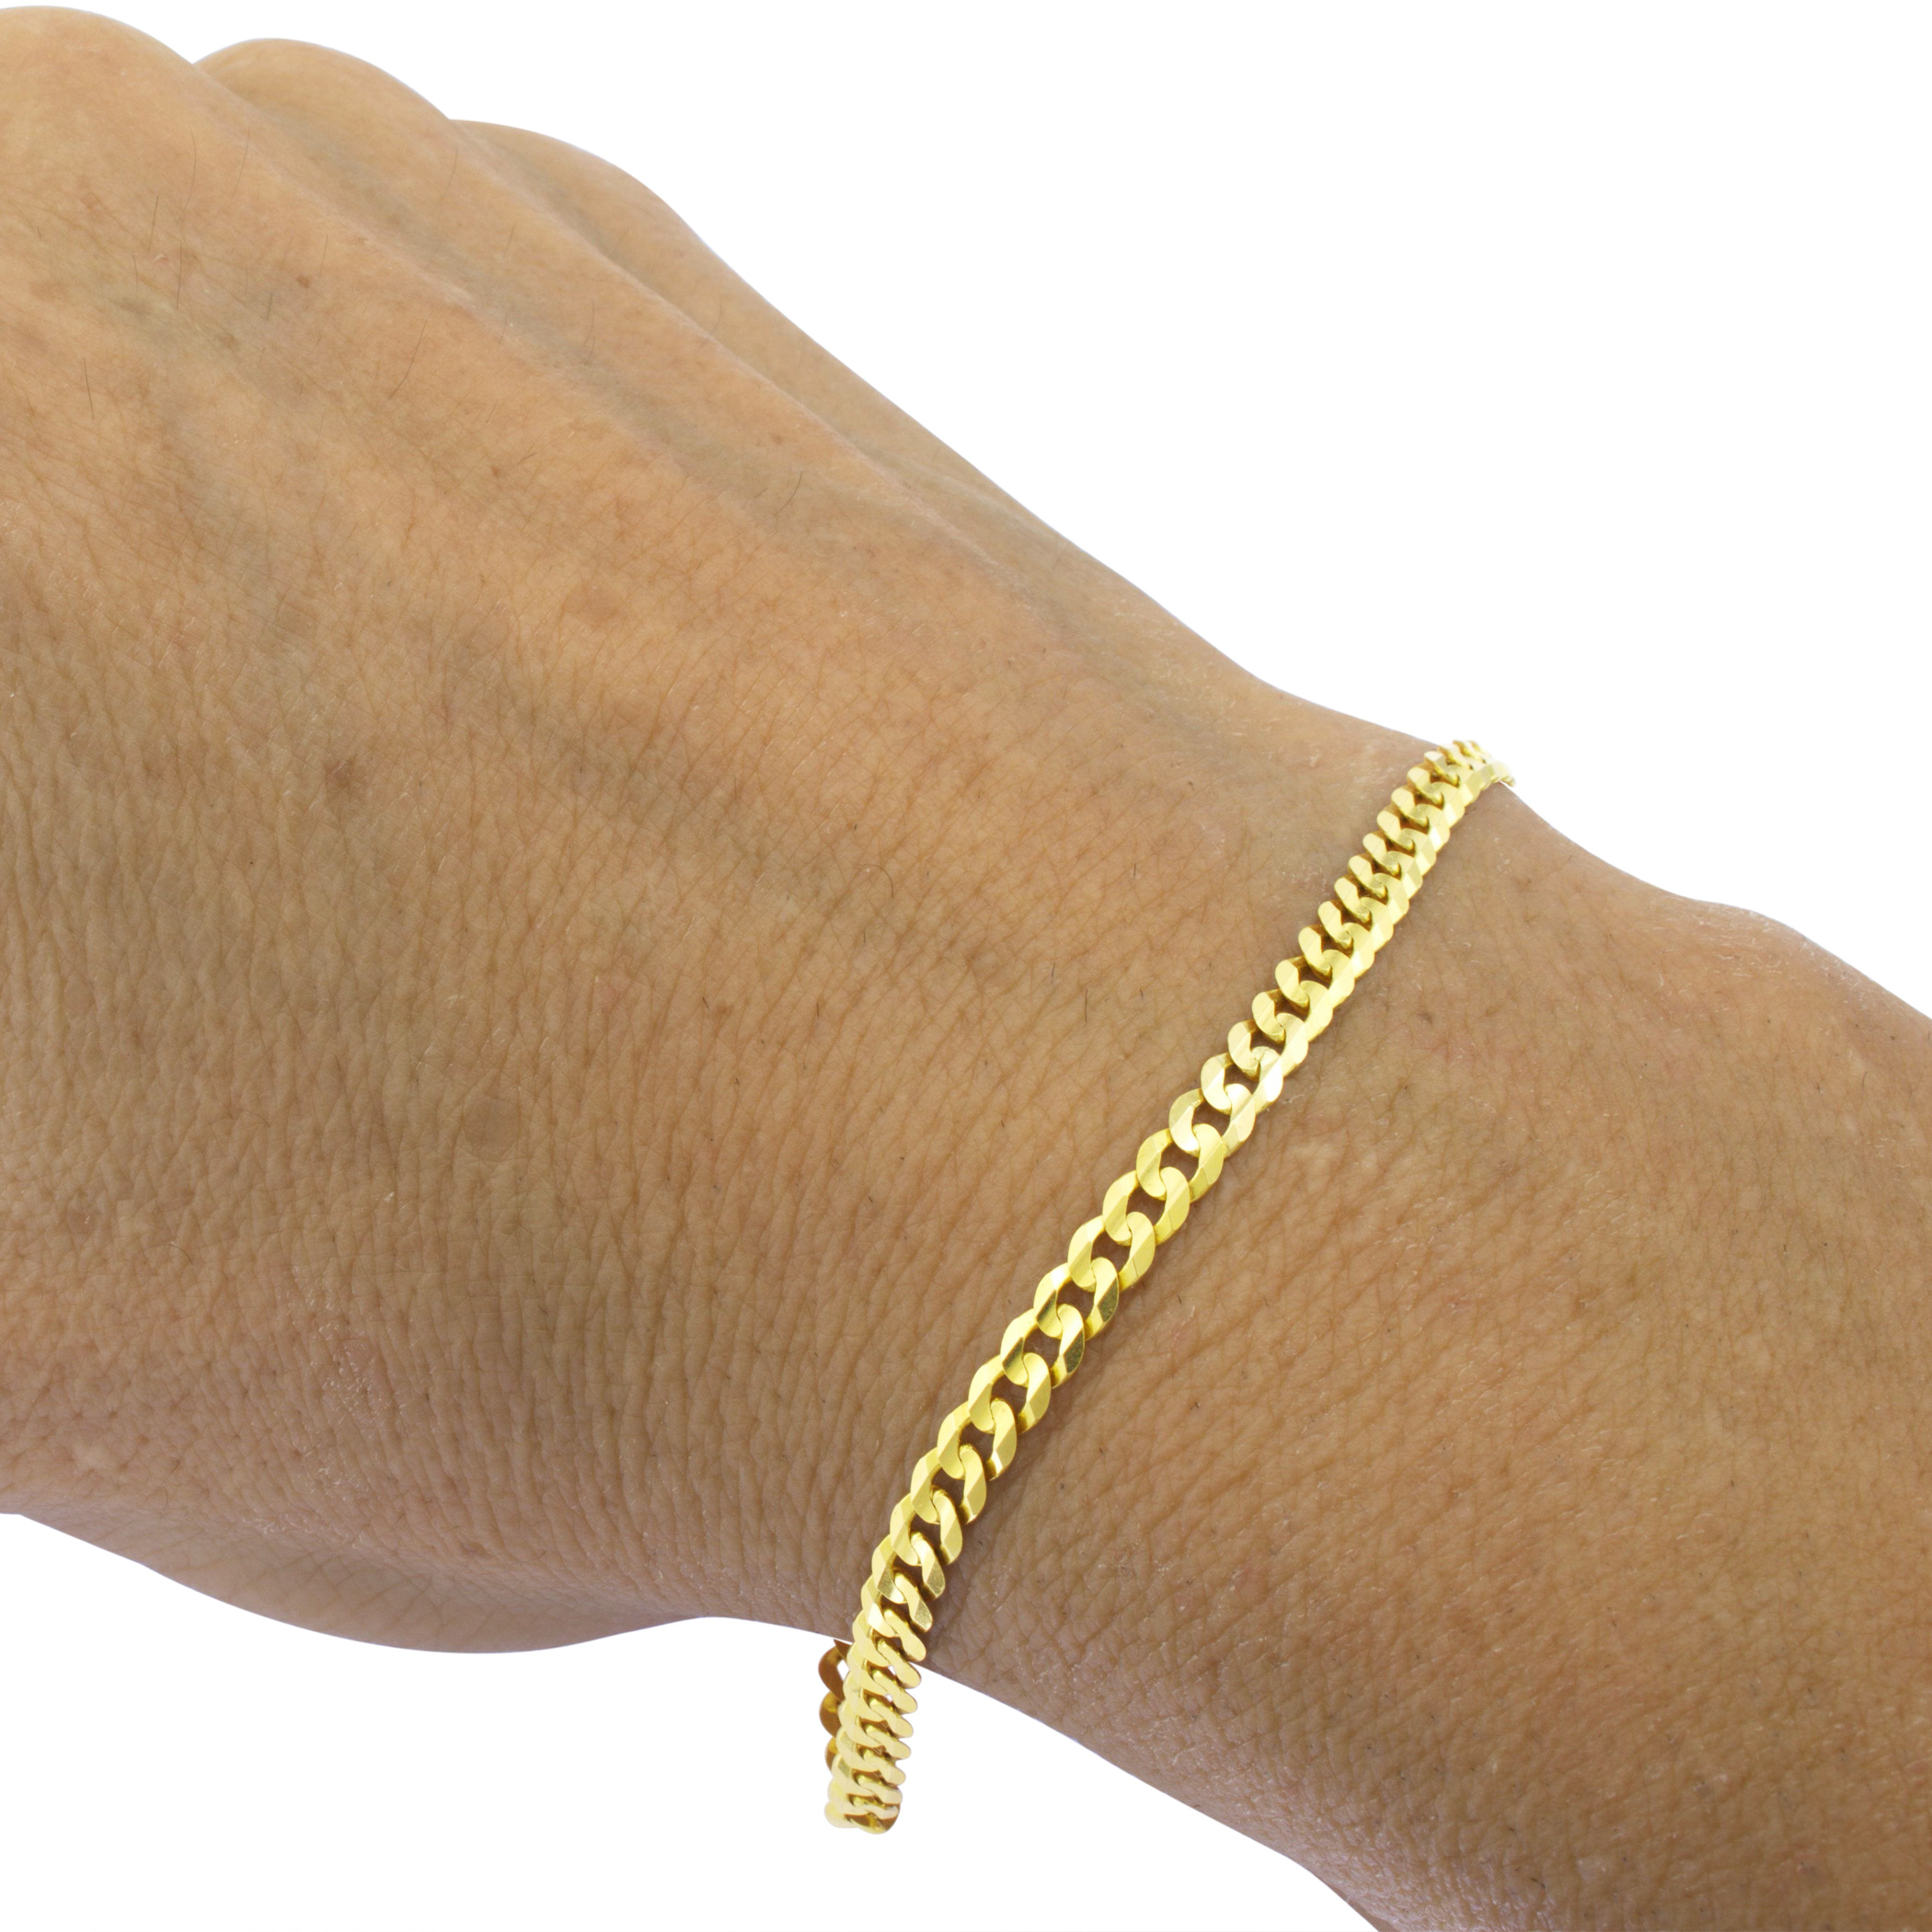 14K-Solid-Yellow-Gold-4mm-Cuban-Curb-Chain-Link-Bracelet-Lobster-Clasp-7-034-8-034-9-034 thumbnail 14